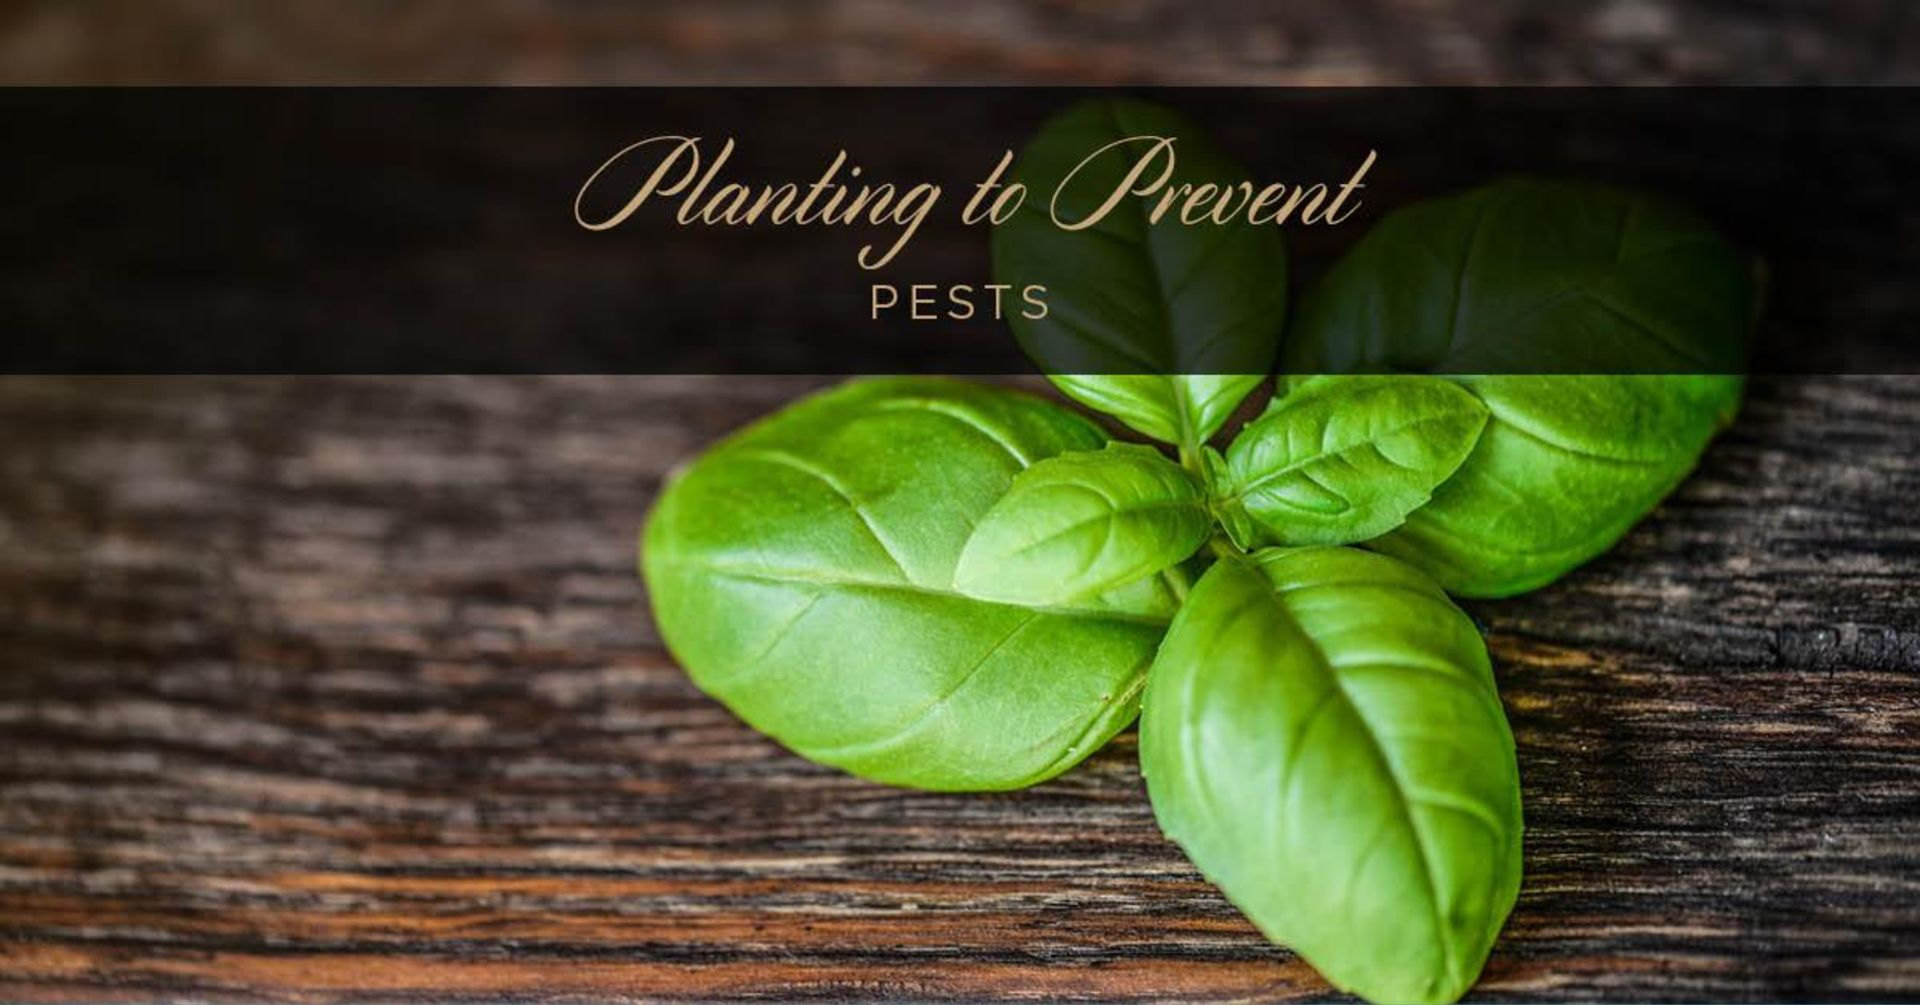 Planting To Prevent Pests